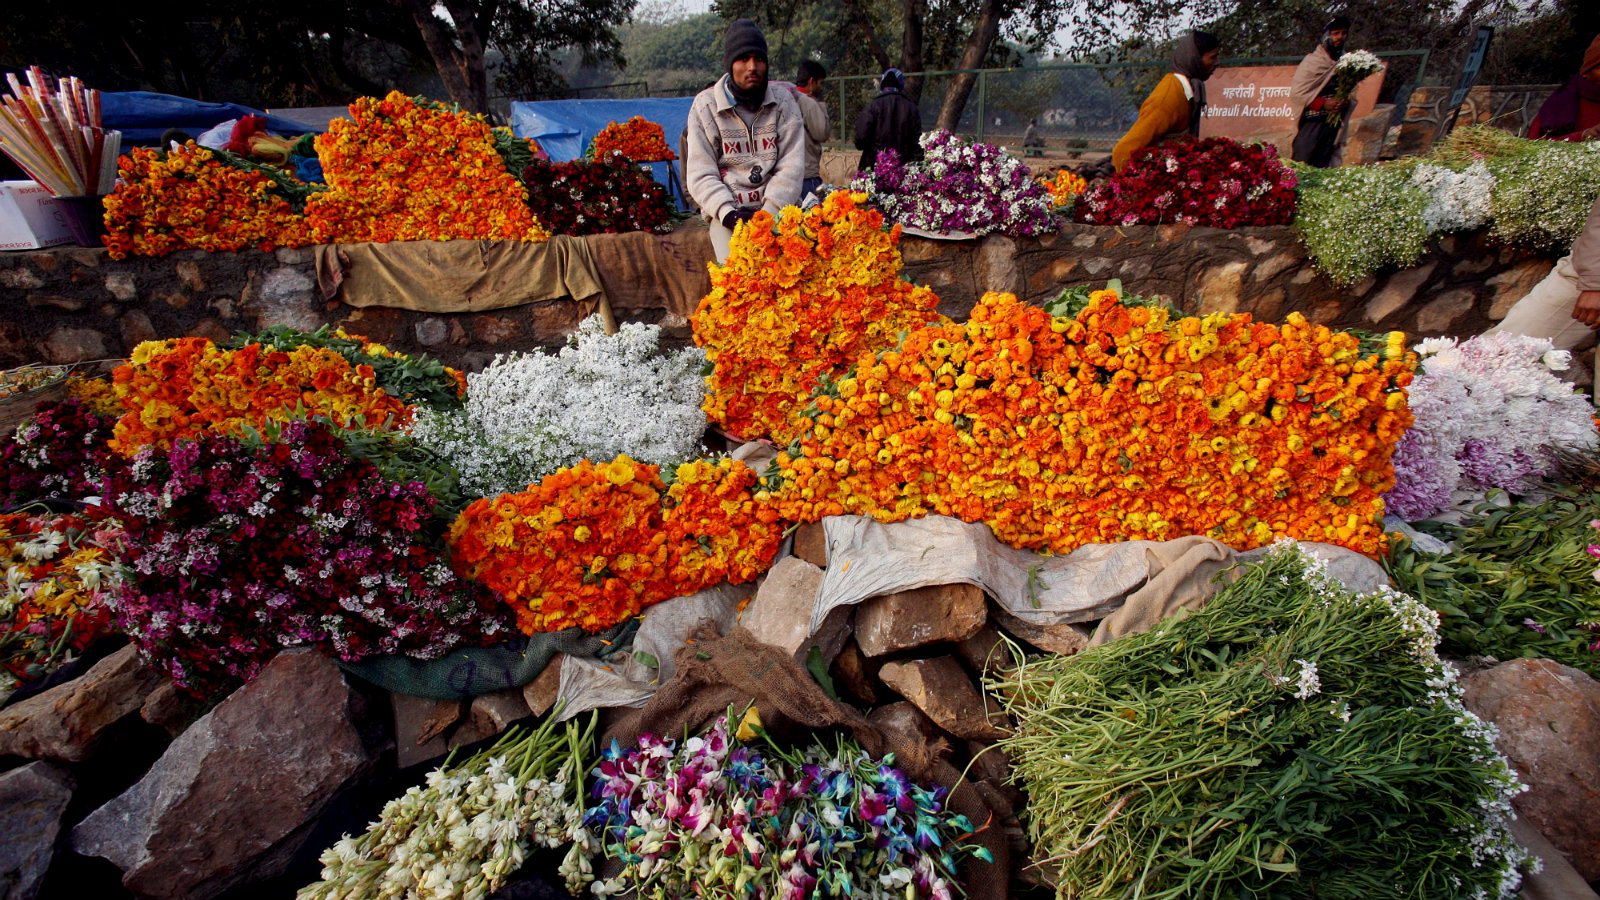 An Indian flower vendor (C) displays his flowers while waiting for customers at a flower market in New Delhi, India, 03 February 2008. Delhi is the epicenter of India's enormous flower traffic and is Asia's largest flower market. The flowers exported from Delhi grace the tables of developed countries all across the globe. Delhi is the convergence point of flower dealers. Flower traders in other major Indian cities have contact with flower traders in Delhi and not with the flower traders at the point of origination of the flowers. While a majority of Indian flowers blooming in the fields are certainly at par in quality to the ones grown in Europe, the problem begins the moment they're cut and commence their journey to the market. Improper handling after harvest, unavailability of optimum temperature and moisture conditions during storage and transportation, under or over-packaging leading to damage and wiltering are a few factors which have an adverse impact on the quality of Indian flowers reaching the consumer - both domestic and international. India's flower production stands at around 1000 tonnes per annum and most of the flower trade occur in the Delhi region.